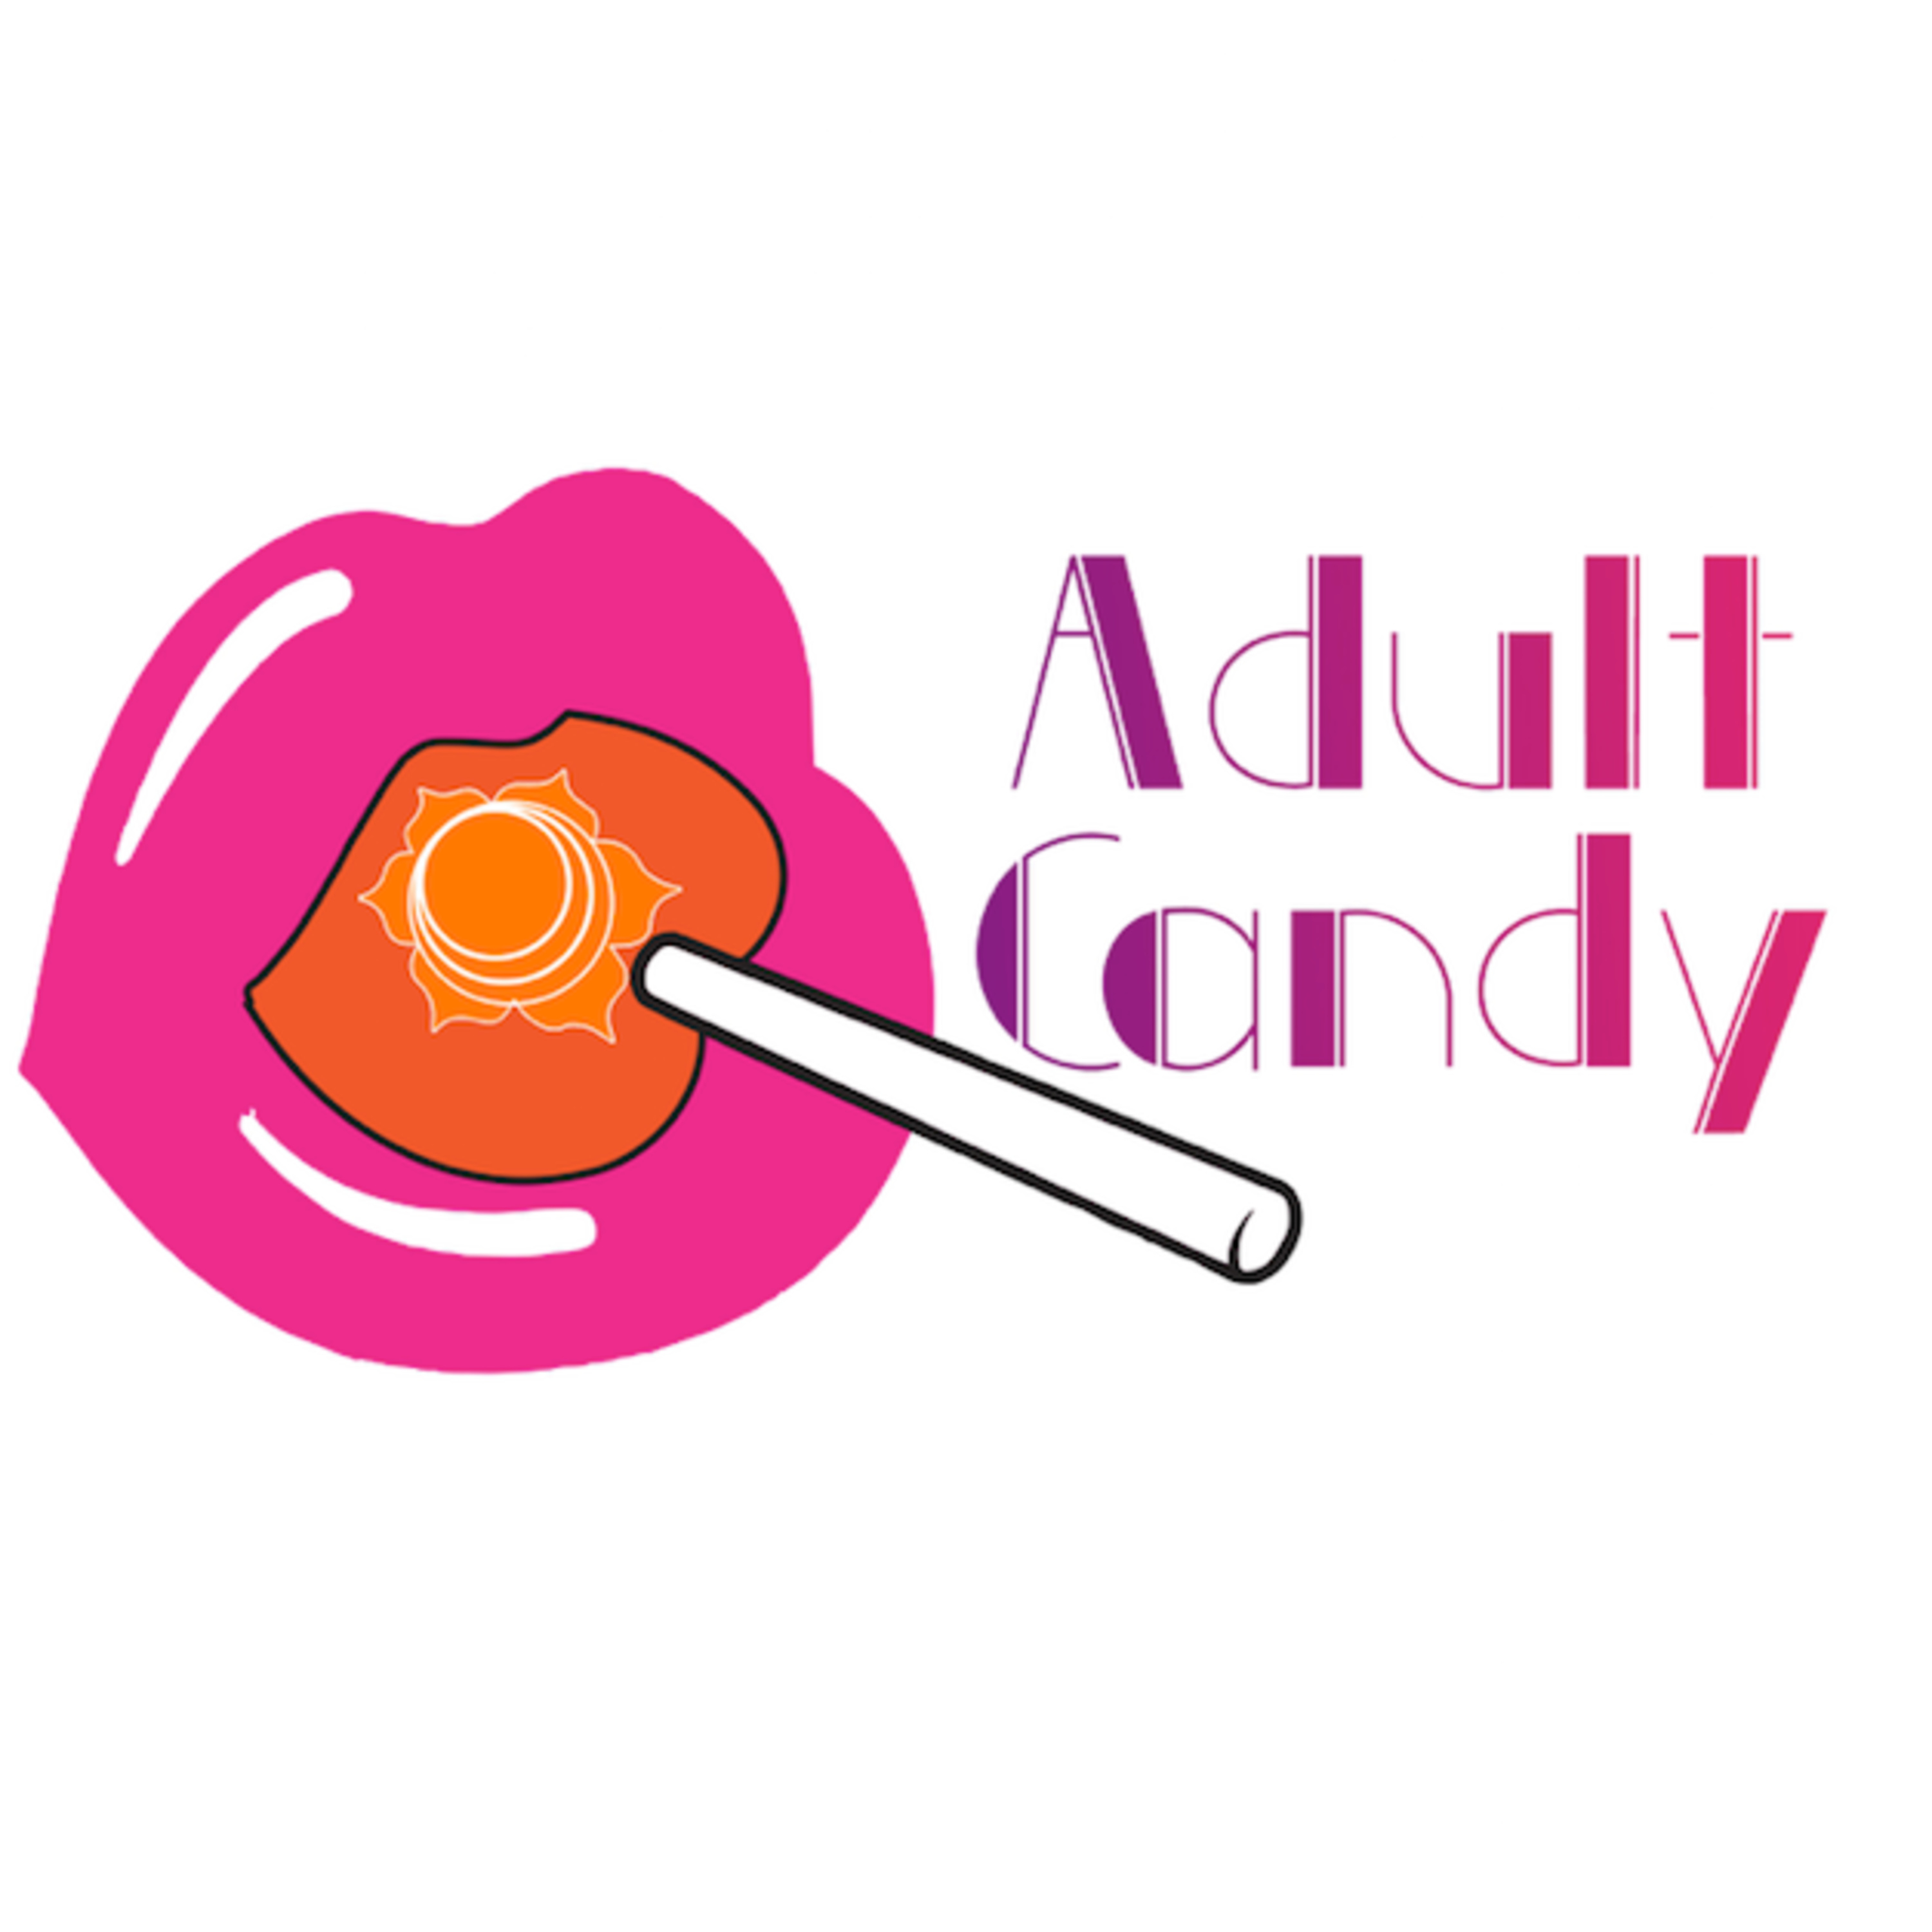 Adult Candy  - Make Love Not Porn Just Might Be The Best Investment During A Global Quarantine Cindy Gallup Its Founder and CEO Has 0 Fu*ks To Give And We All Should Be Just Like Her